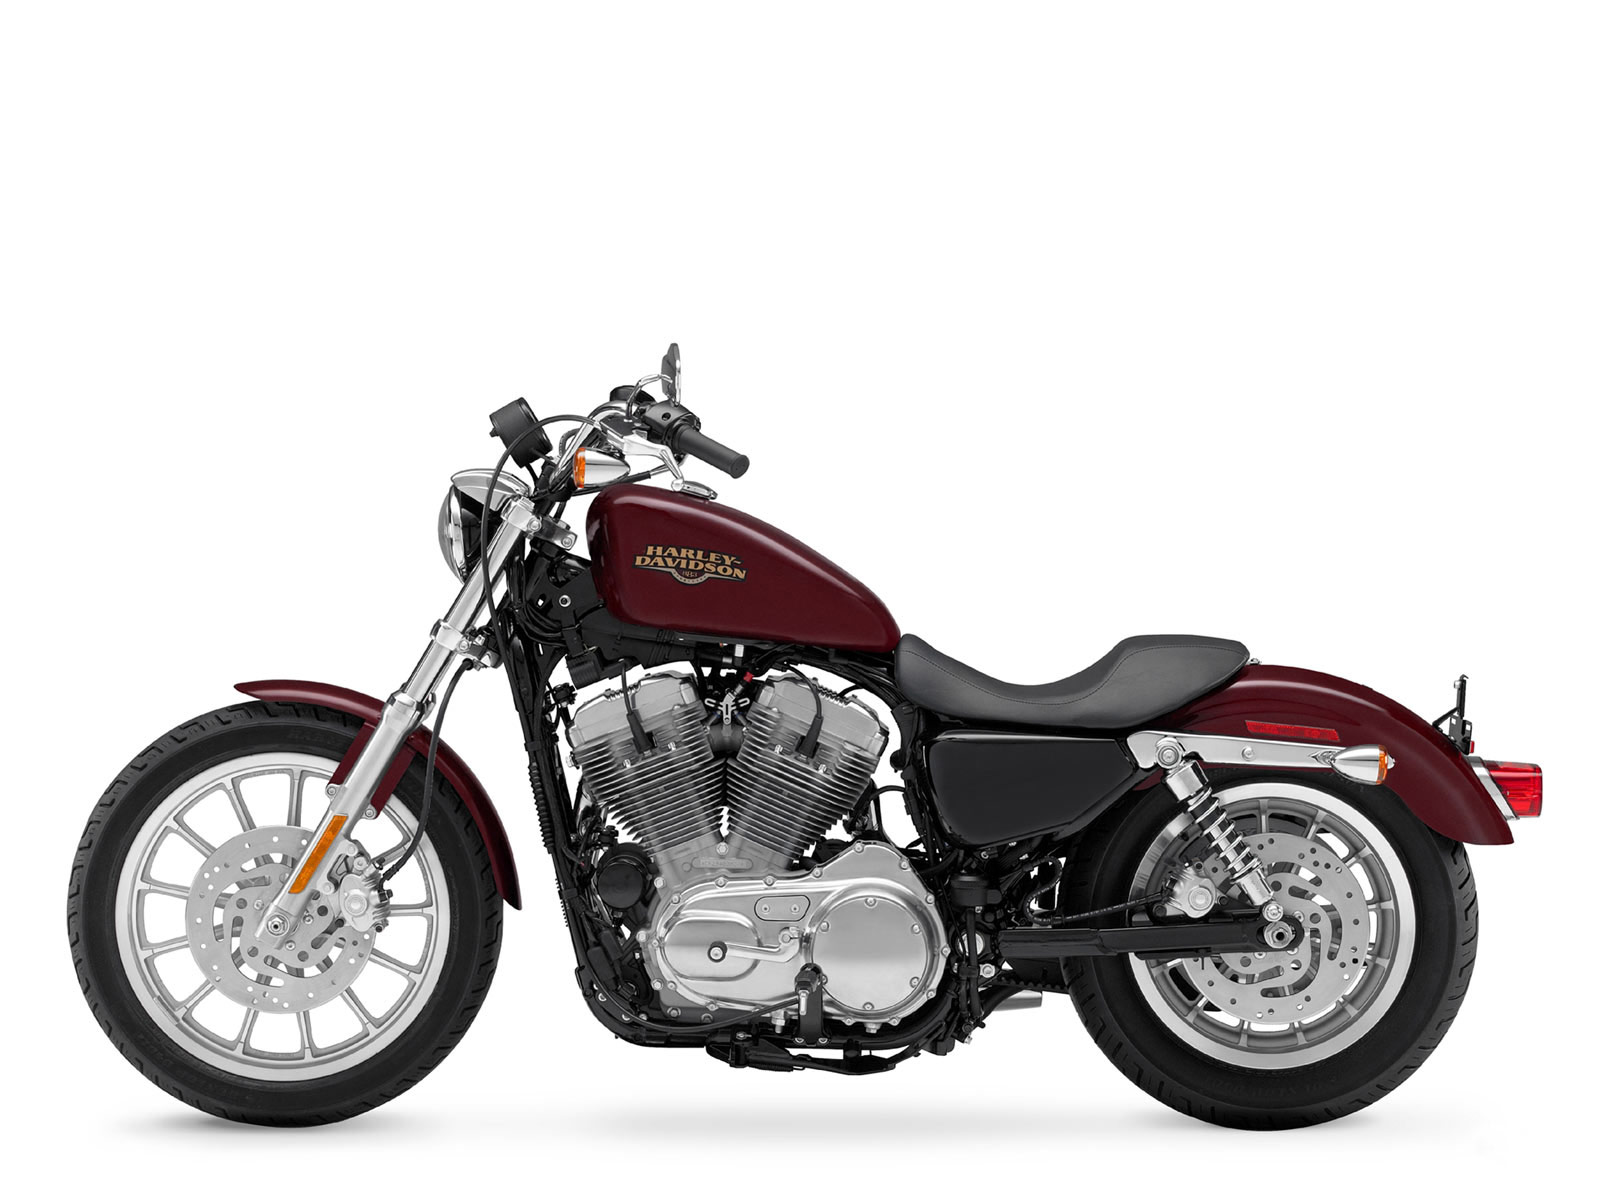 small resolution of 2009 1200 harley engine diagram 1 wiring diagram source 2009 1200 harley engine diagram